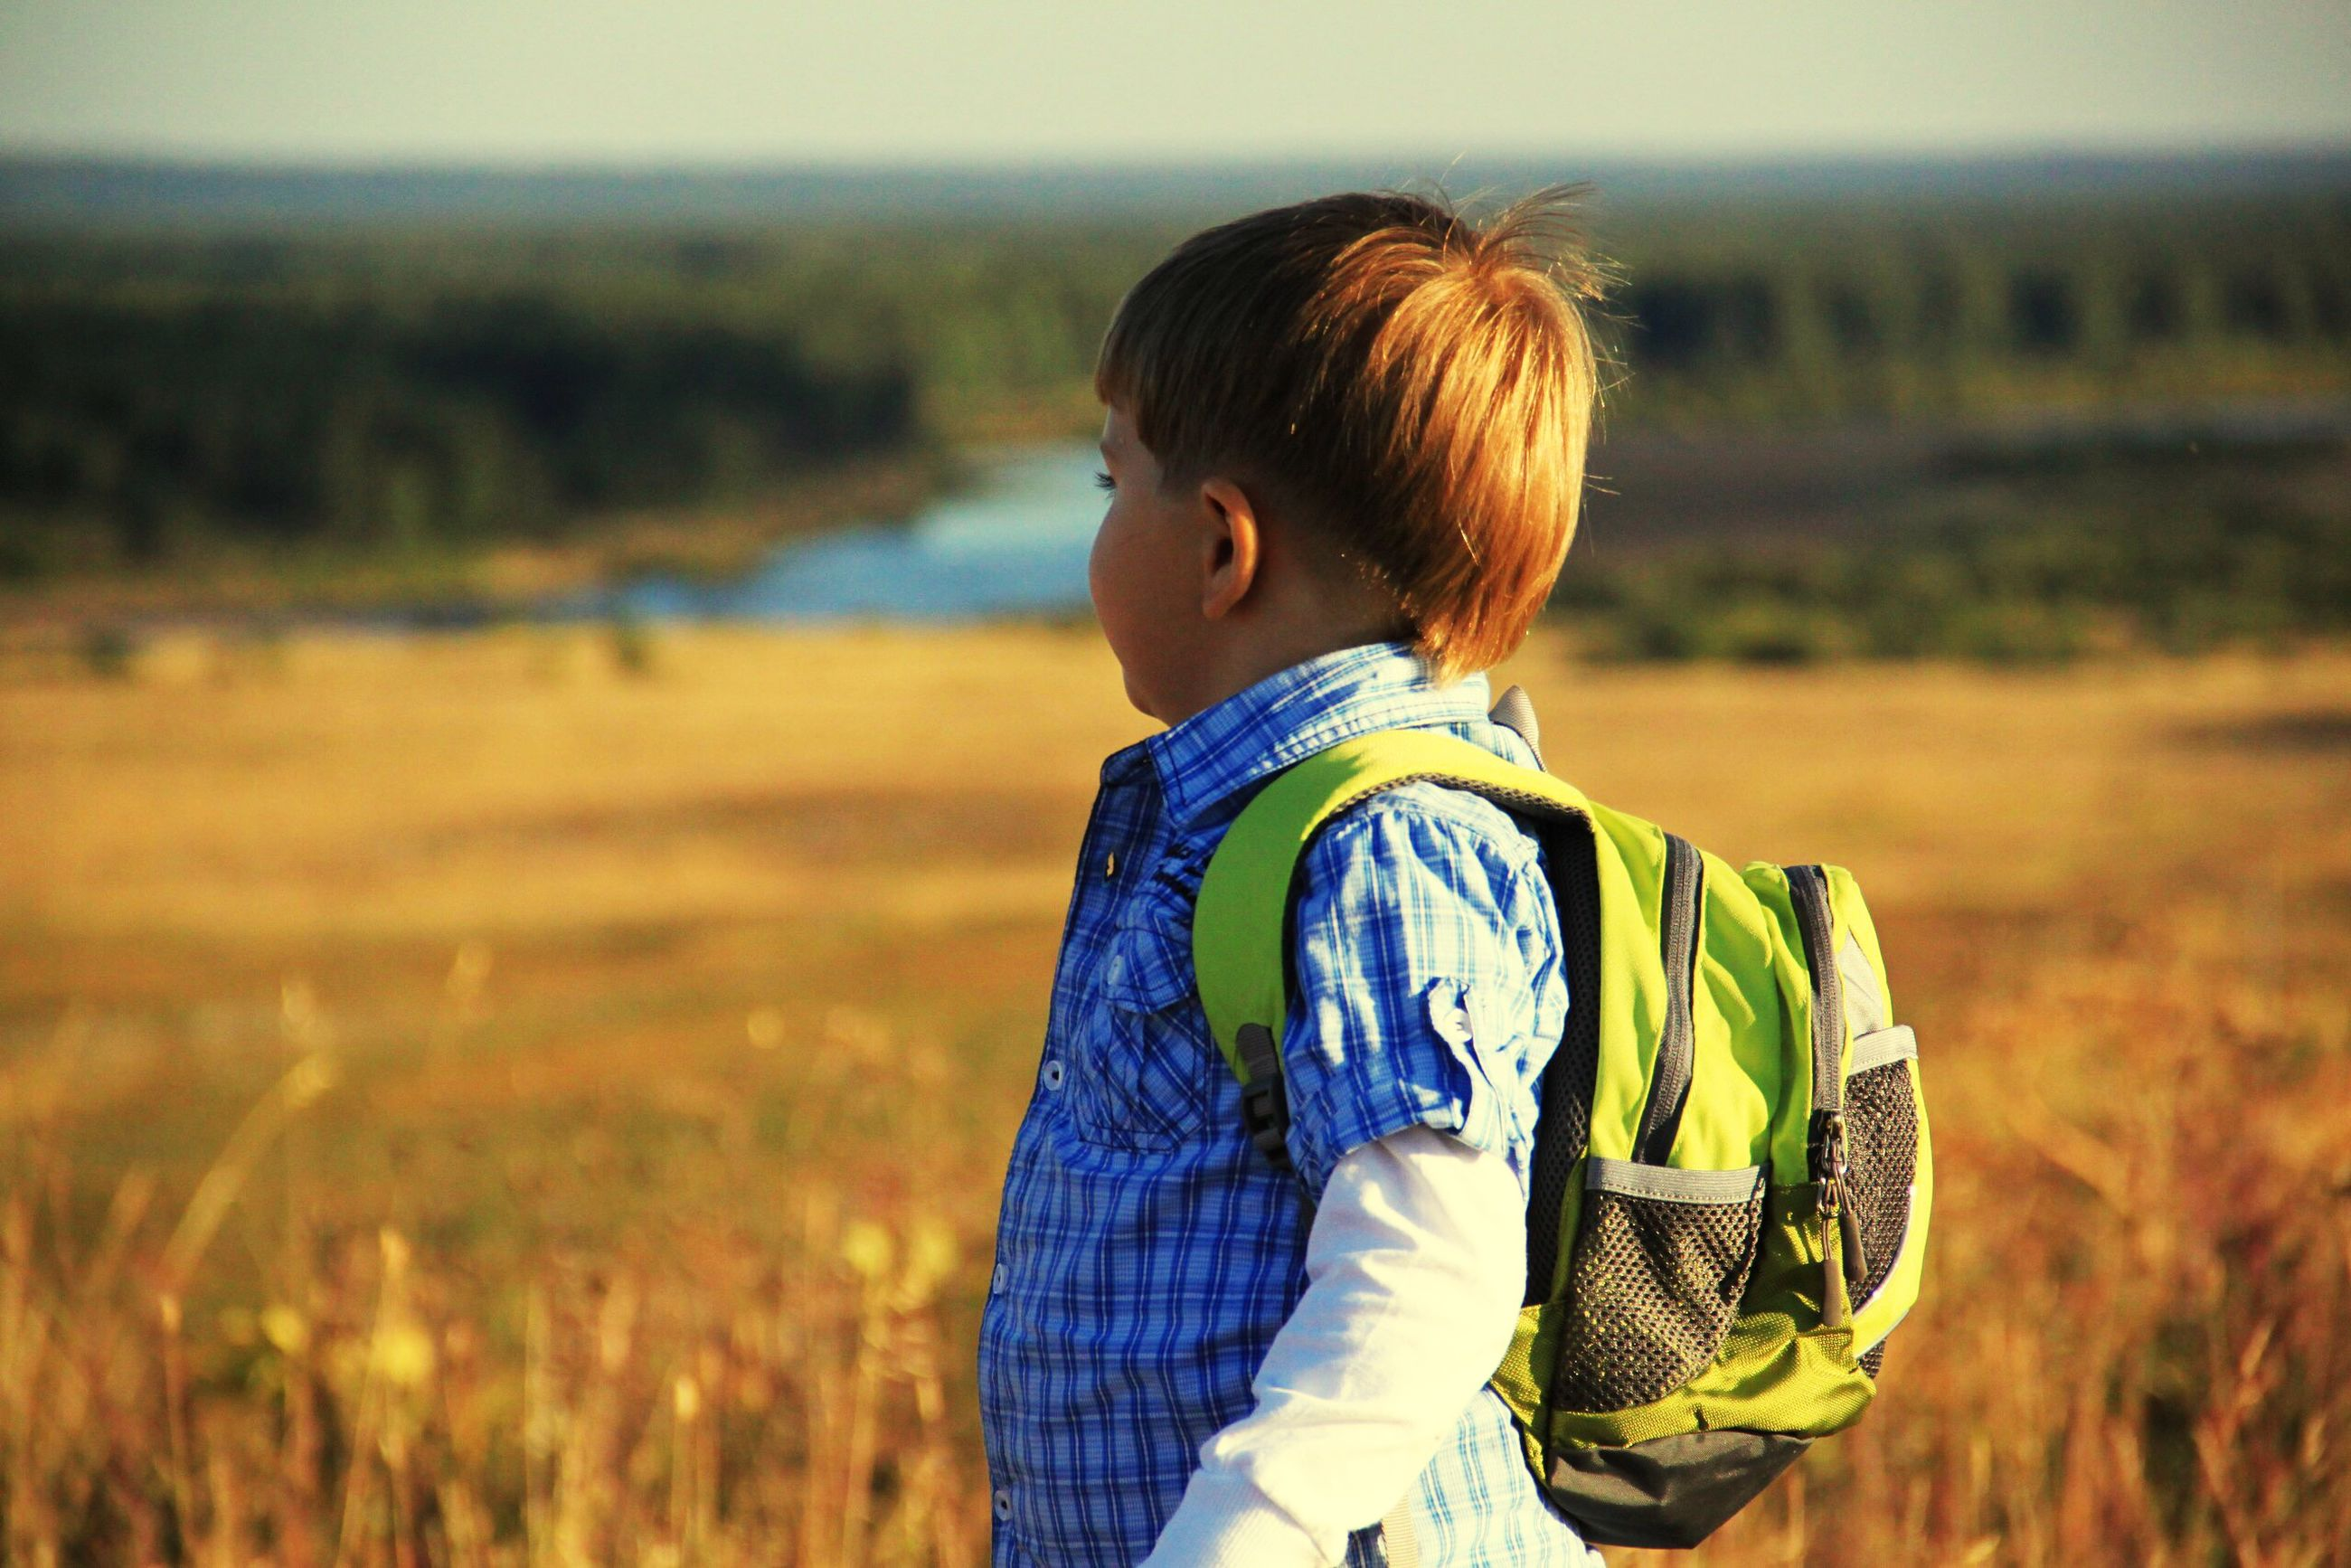 childhood, real people, child, field, one person, leisure activity, land, focus on foreground, lifestyles, nature, rear view, waist up, sunlight, standing, boys, day, casual clothing, women, hairstyle, outdoors, innocence